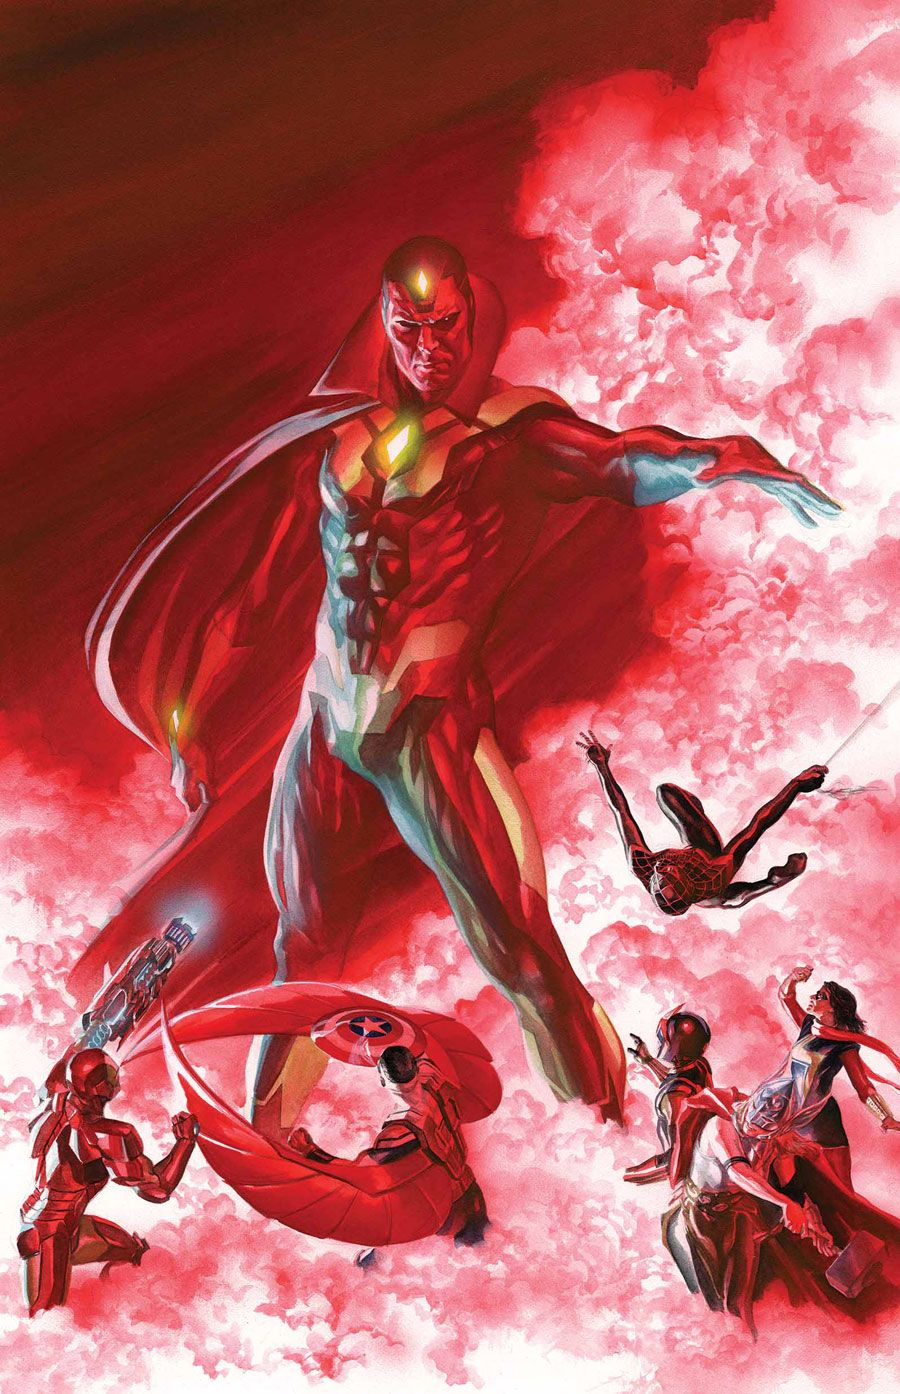 all-new, all-different avengers #6 mark waid (w) • mahmud asrar (a) cover by alex ross